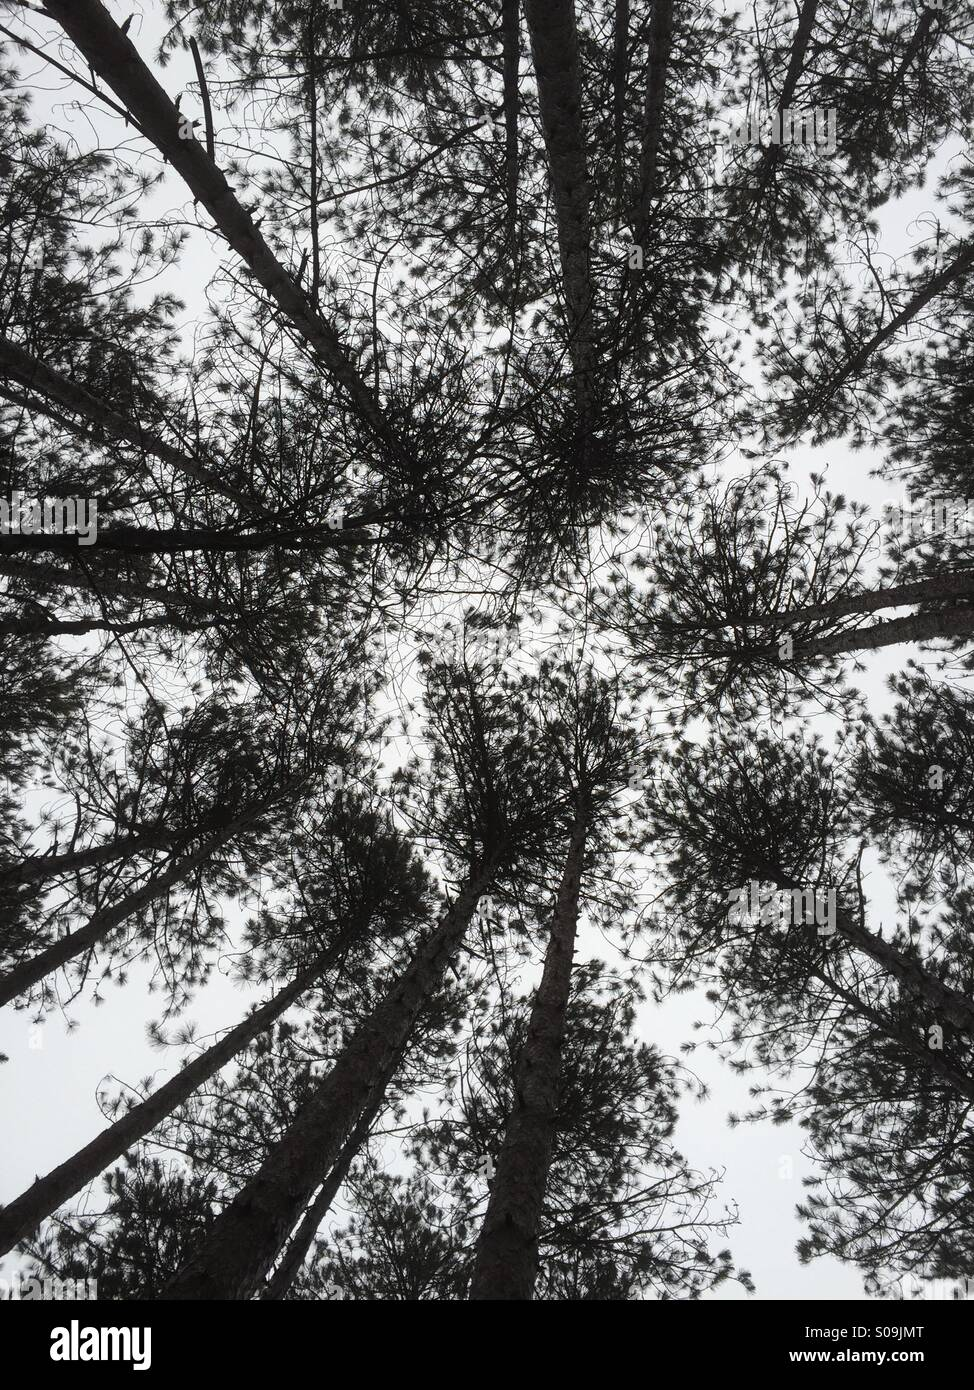 Evergreen trees directly overhead silhouetted against white sky - Stock Image